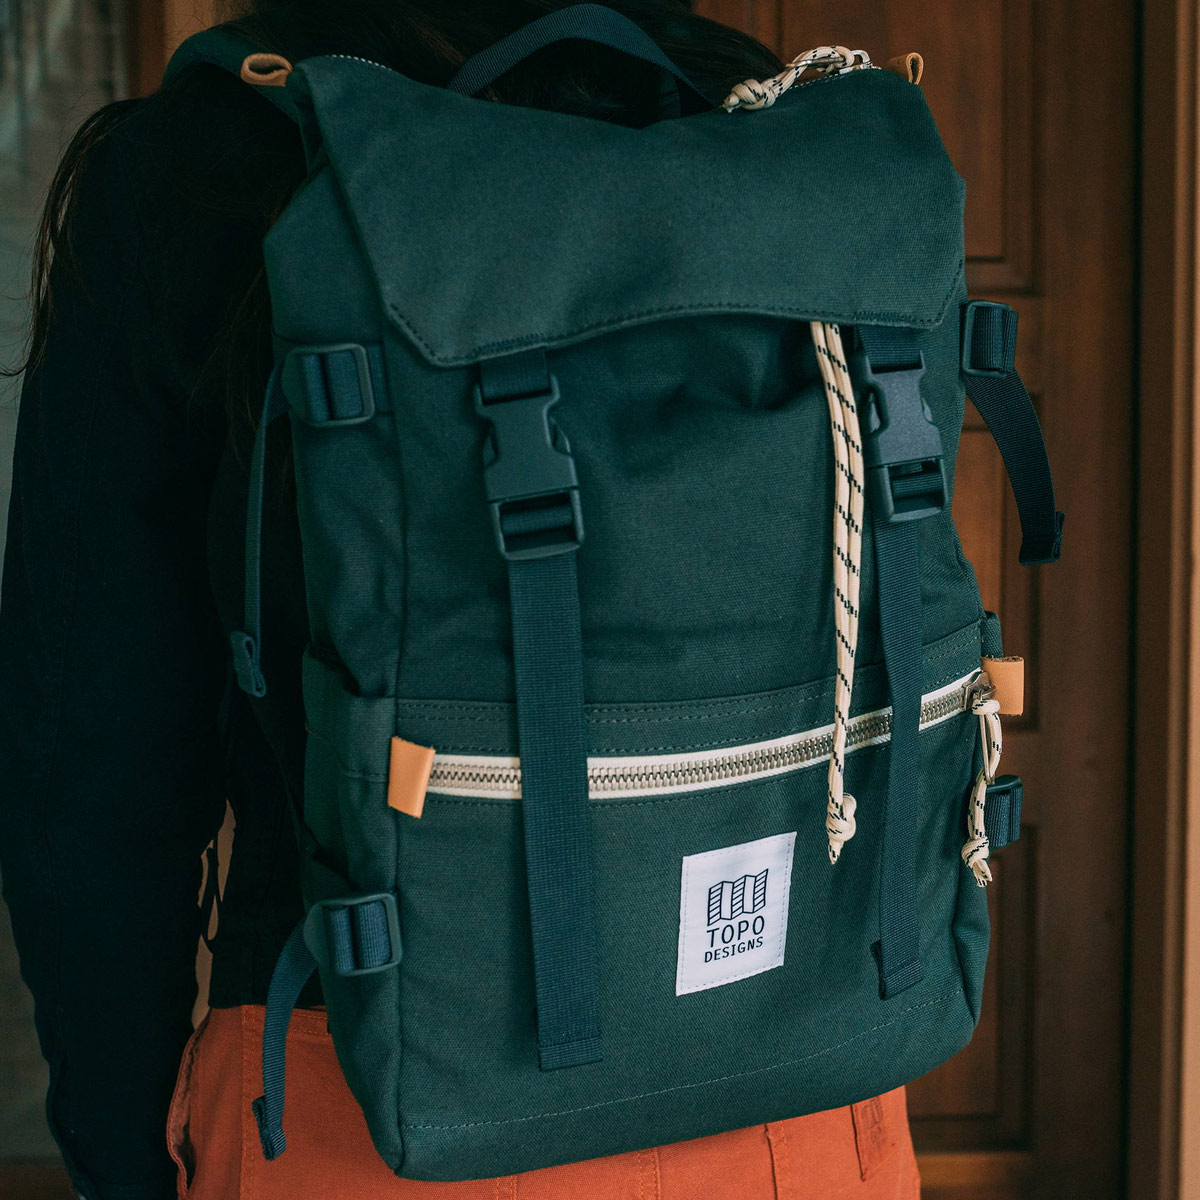 Topo Designs Rover Pack Canvas Forest, timeless styling and durable build with great functionality